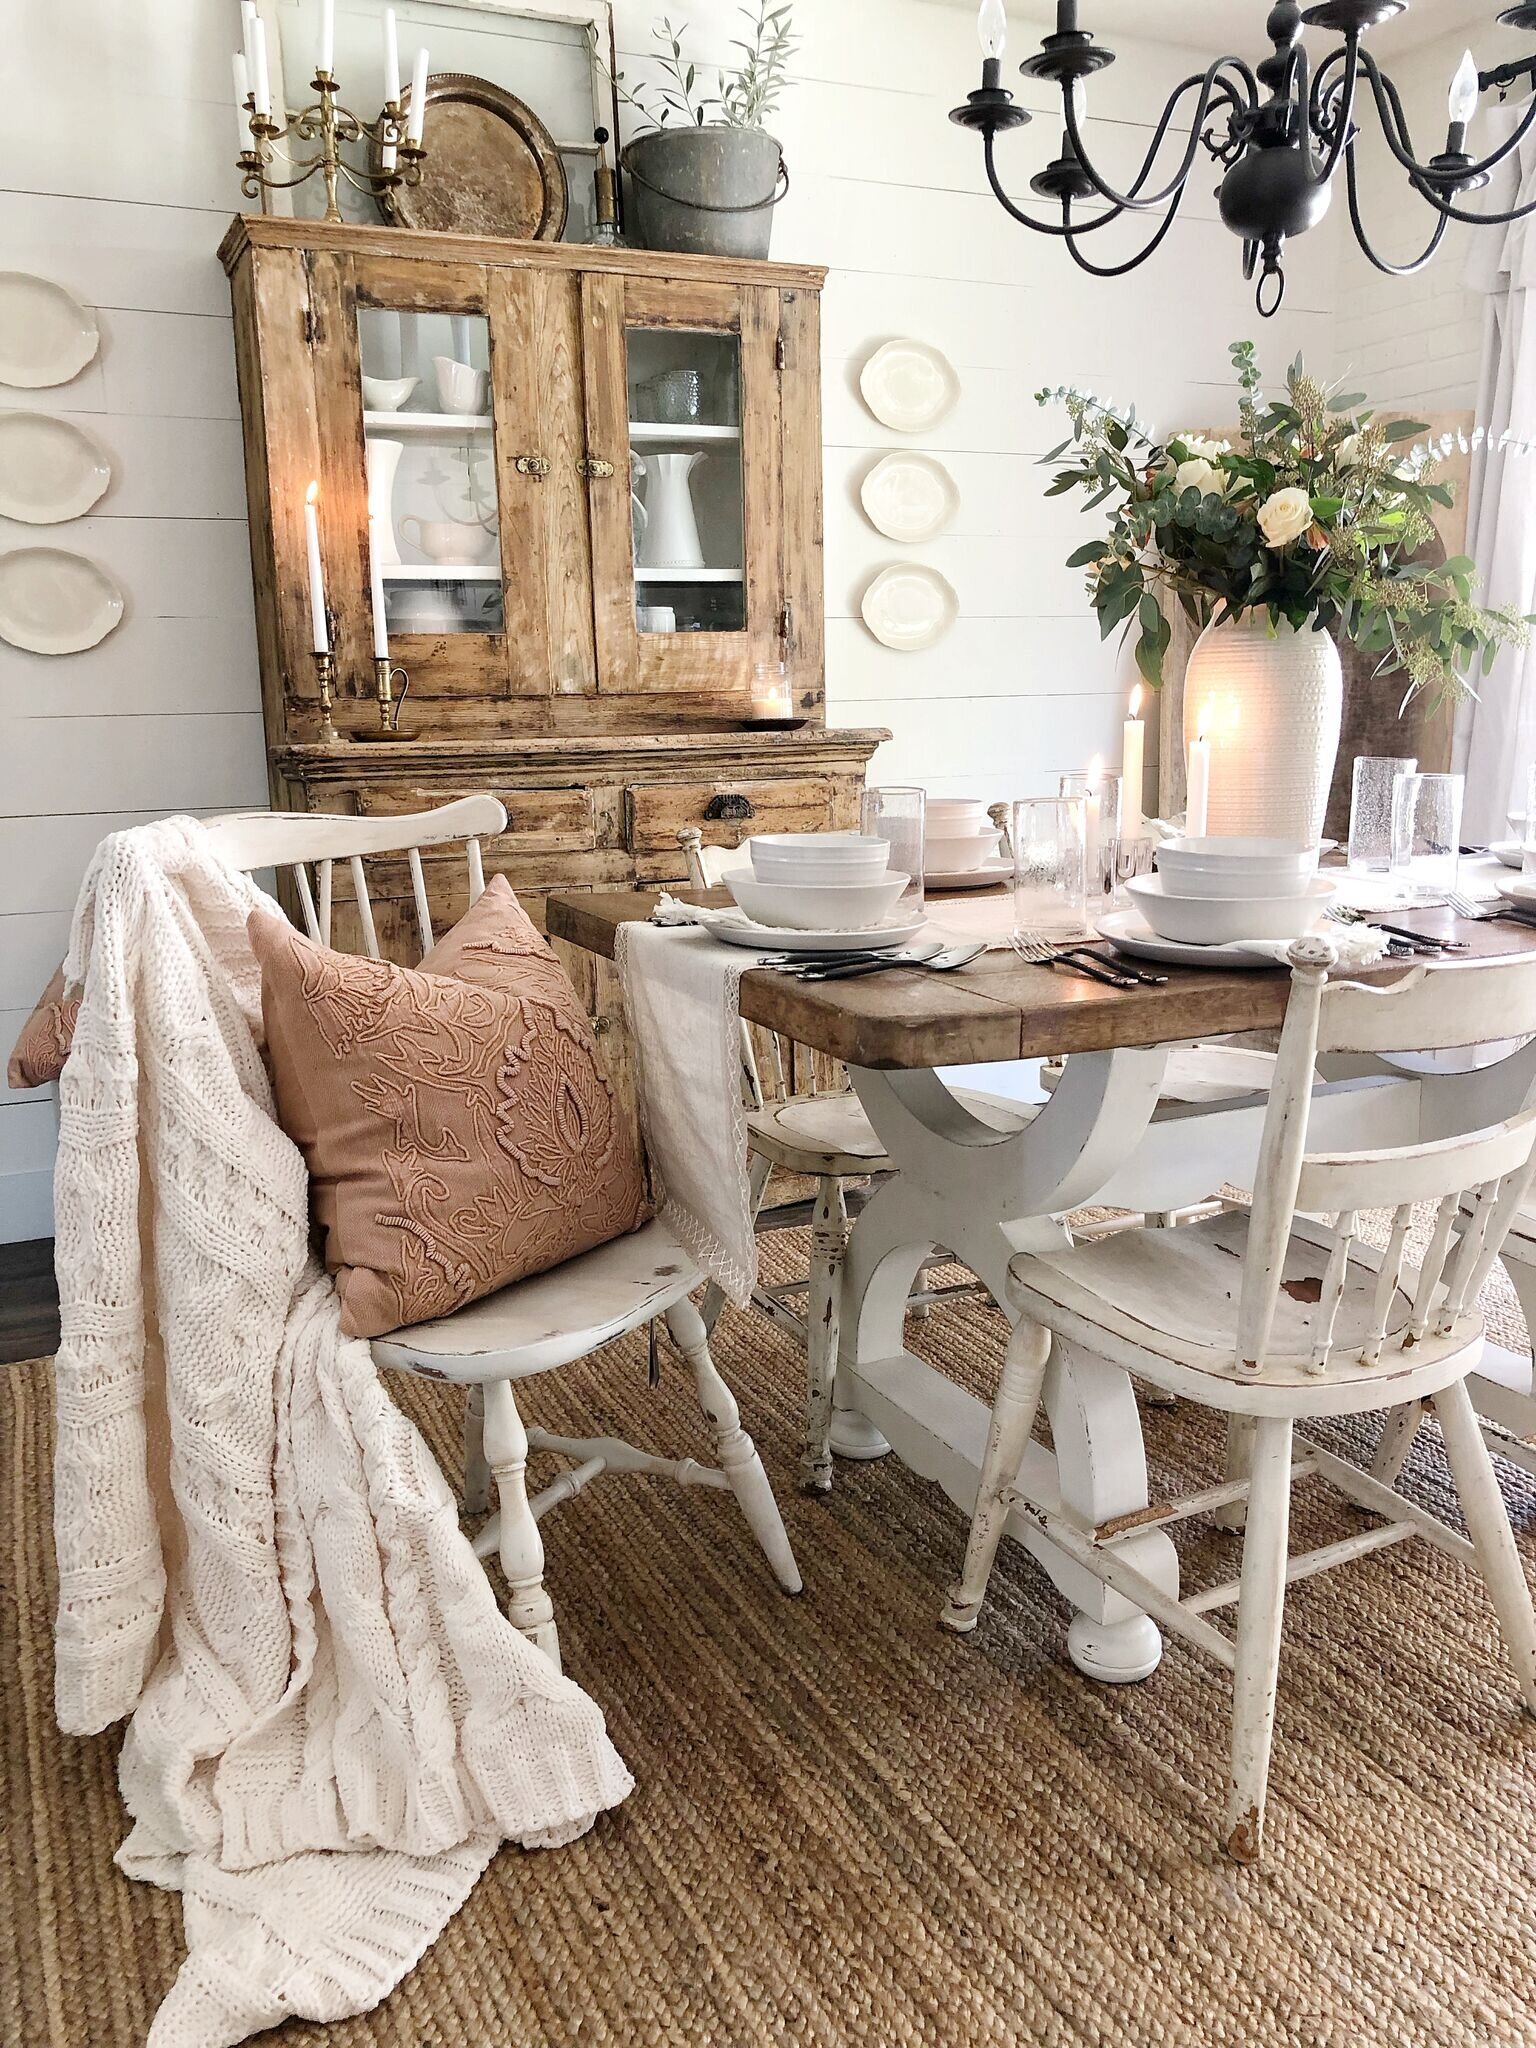 The warm colors of the pillow and rug are perfect for subtle fall decor.